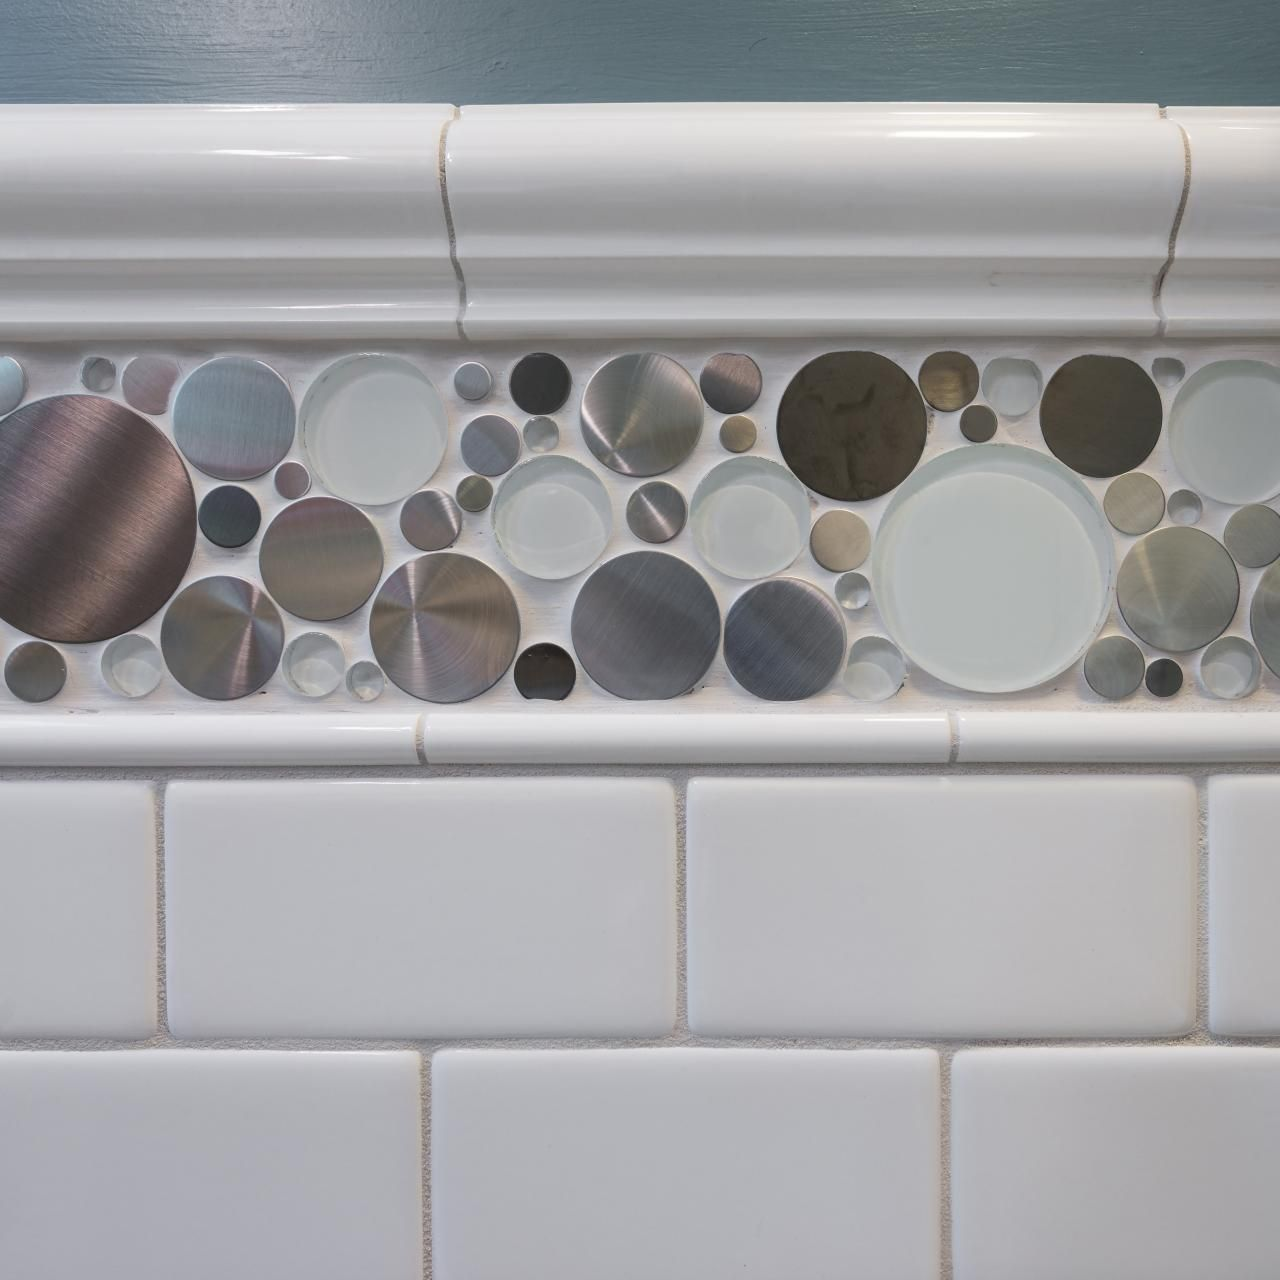 Jazz up classic white subway tile with an accent tile like the jazz up classic white subway tile with an accent tile like the steel and dailygadgetfo Image collections